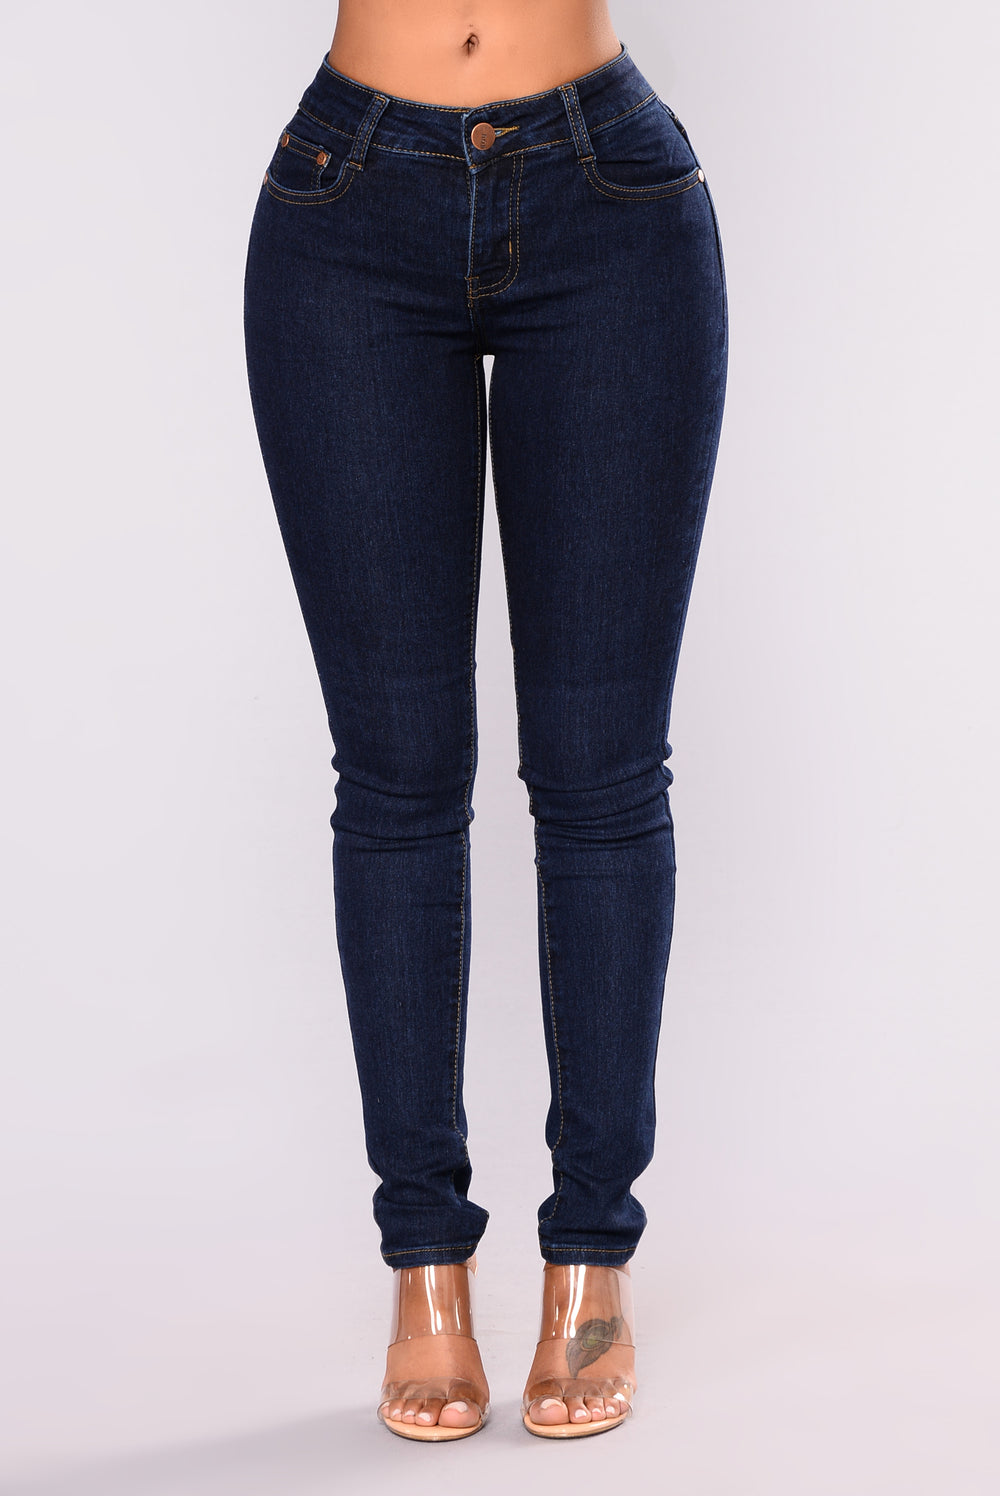 Brunch Aficionado Skinny Jeans - Dark Denim